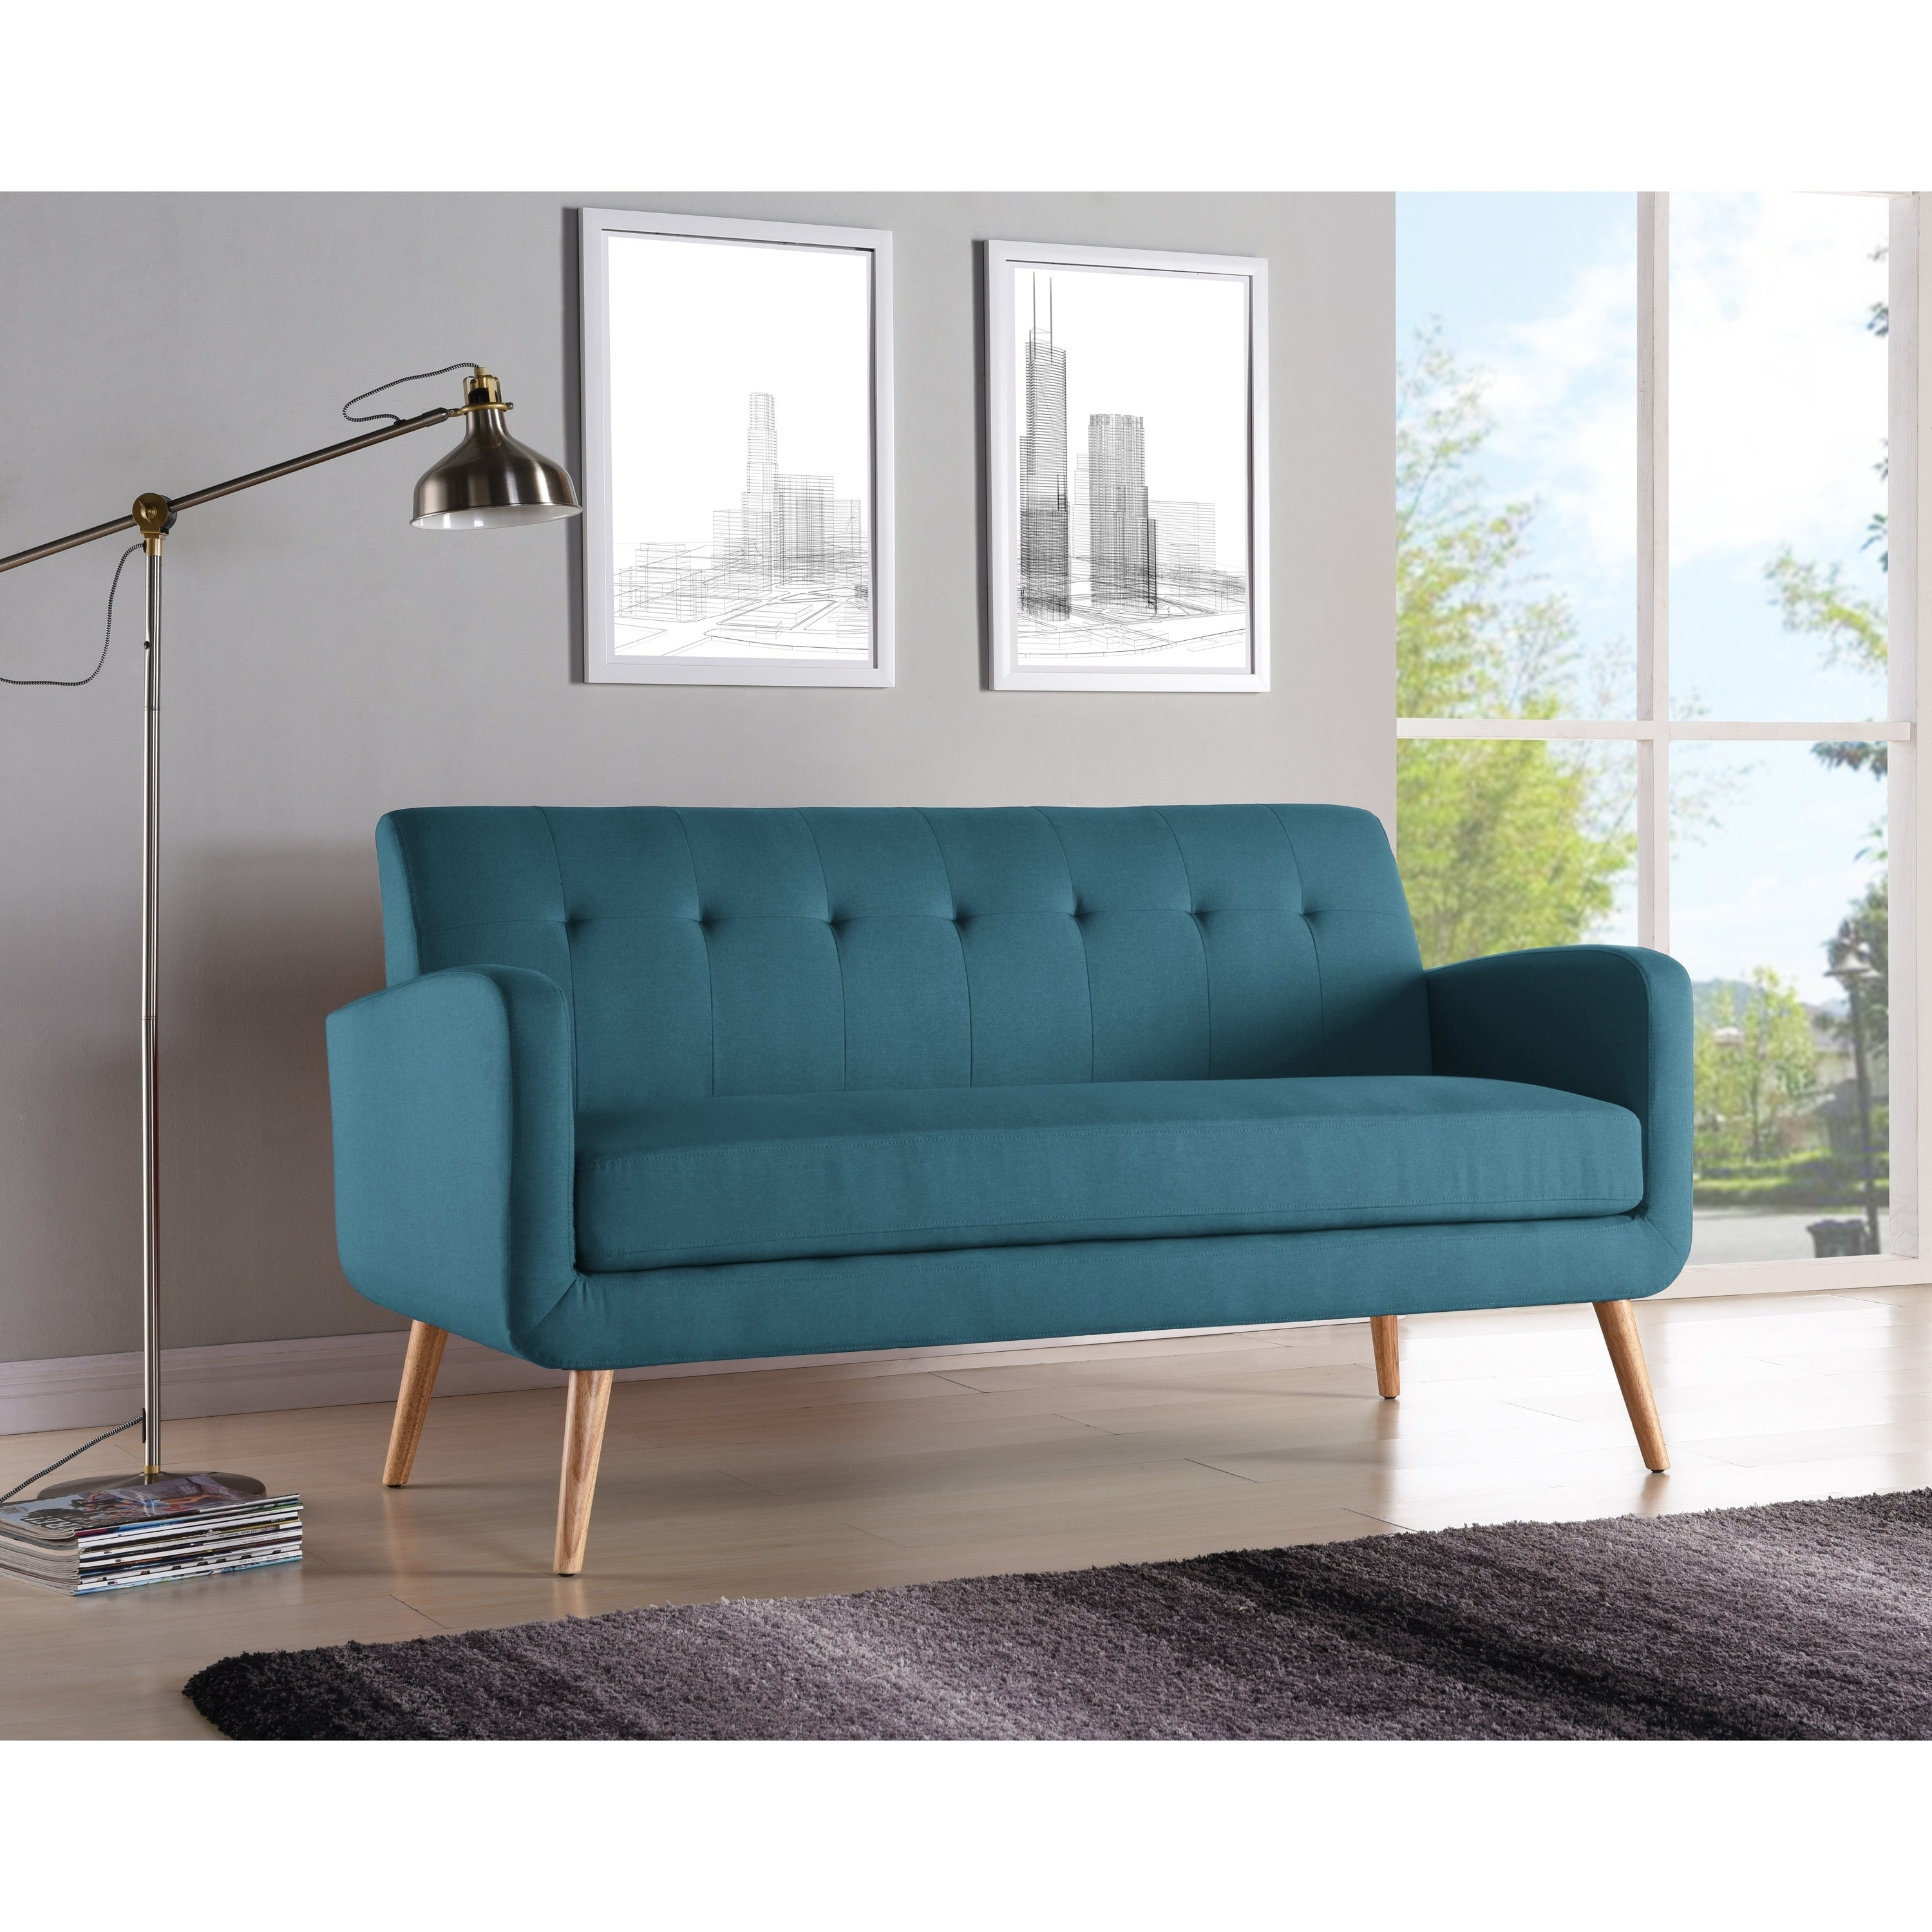 Handy living kingston mid century modern caribbean blue linen sofa